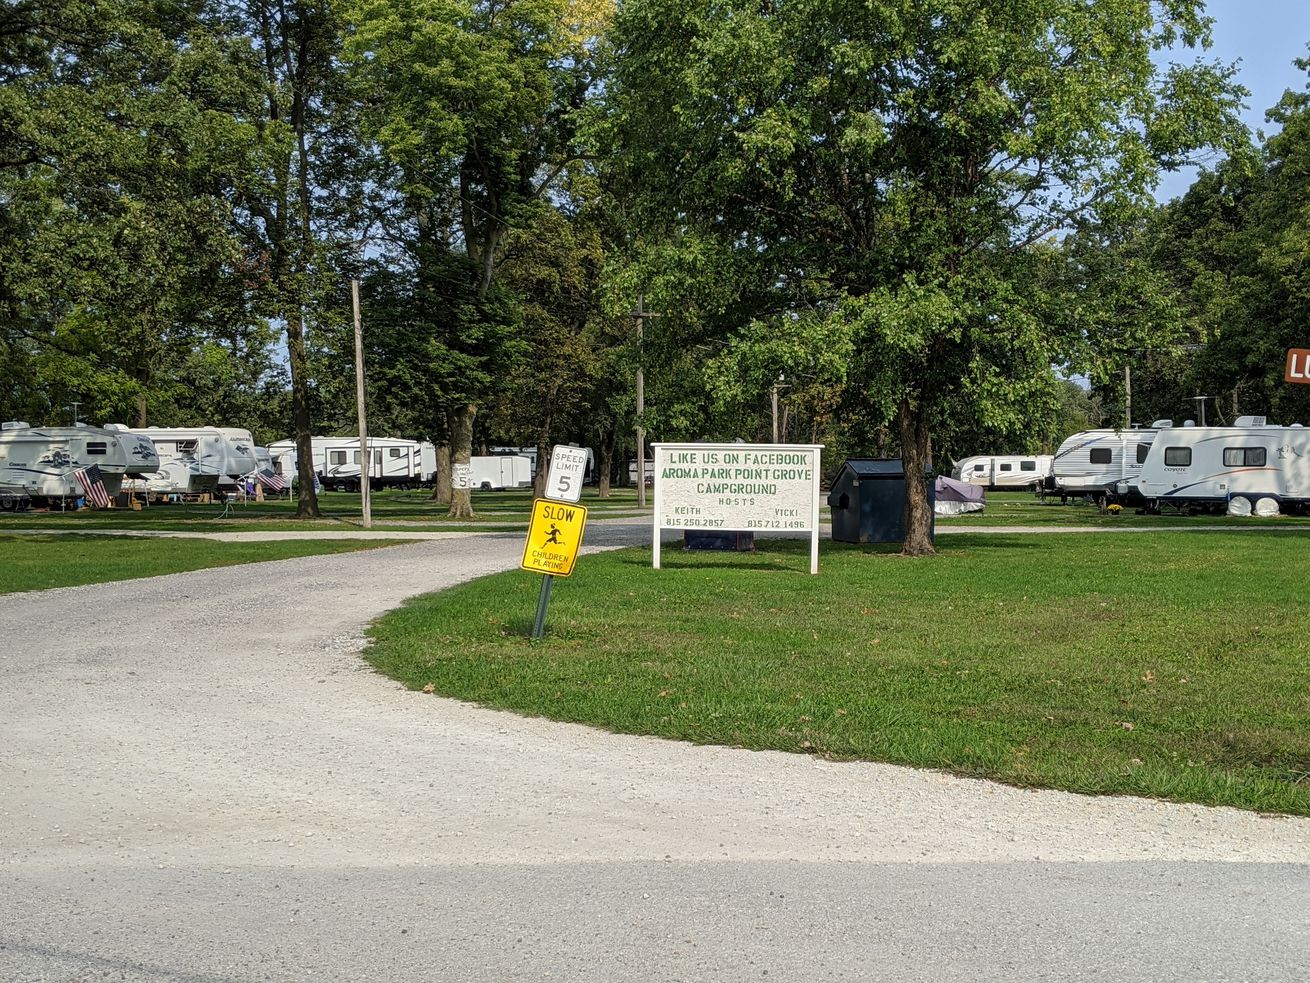 Camping gone wild: Surge keeps going in RVs and camping during the pandemic